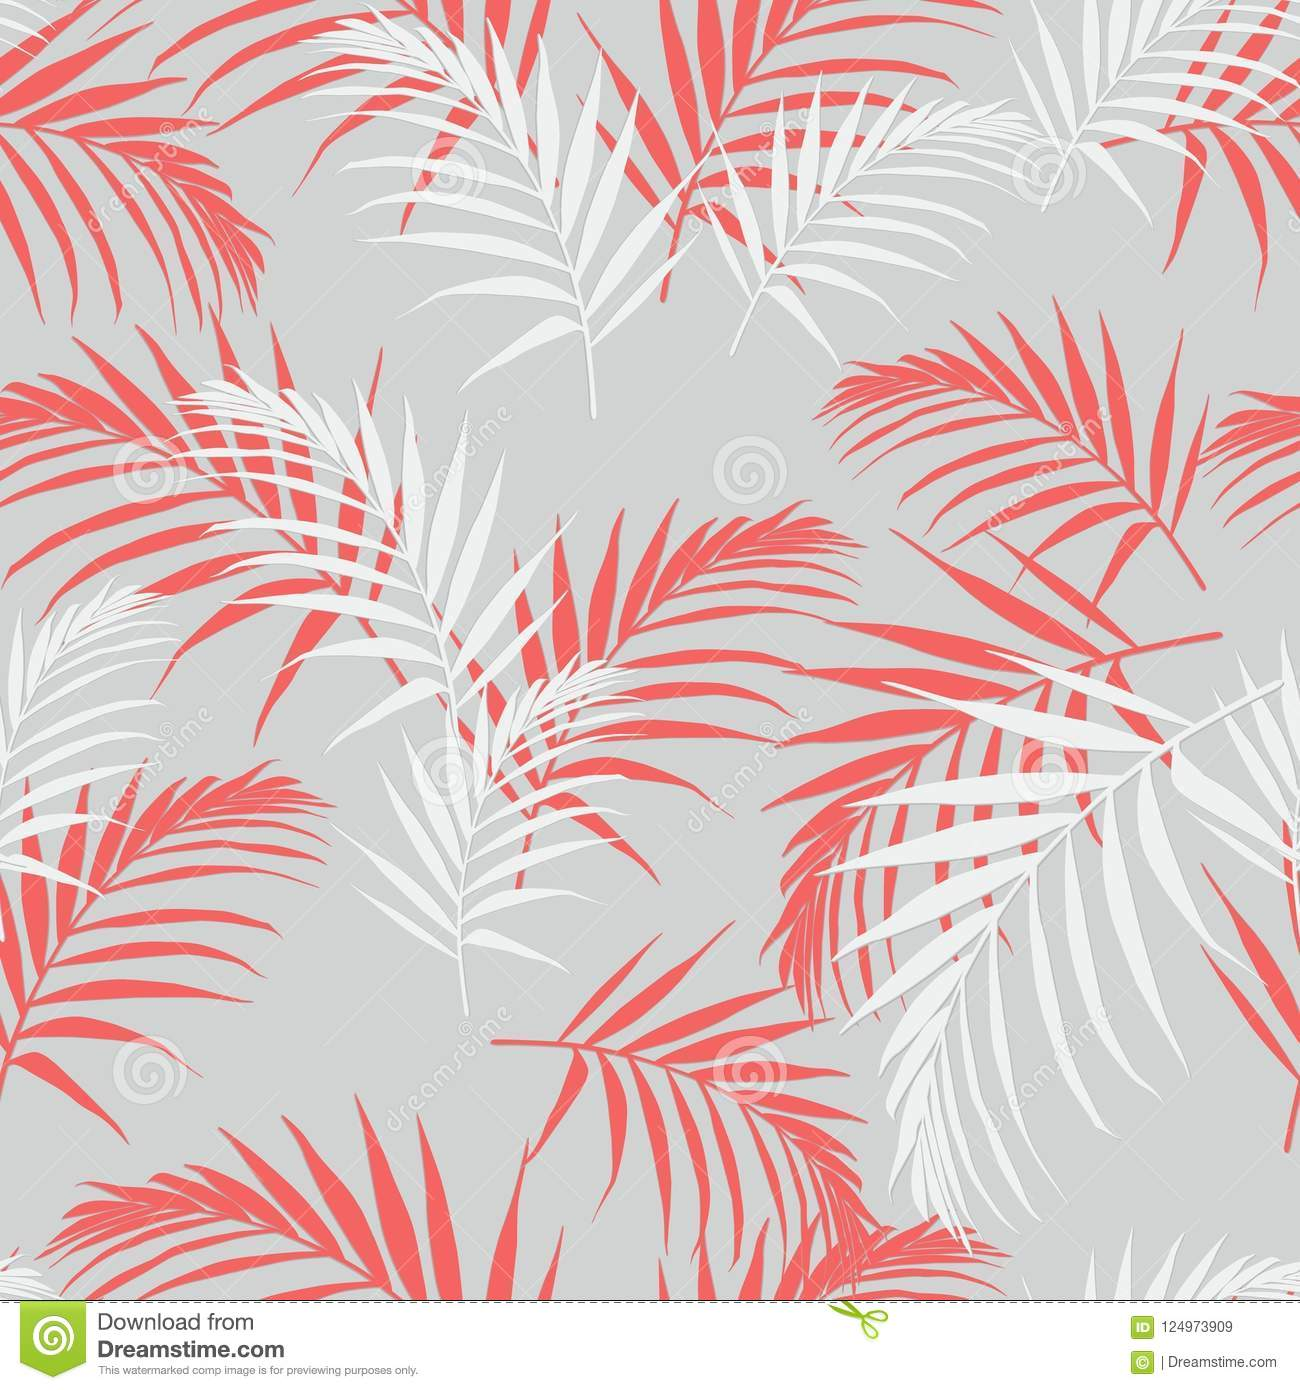 Beautiful Seamless Abstract Floral Pattern With Palm Orange Leaves